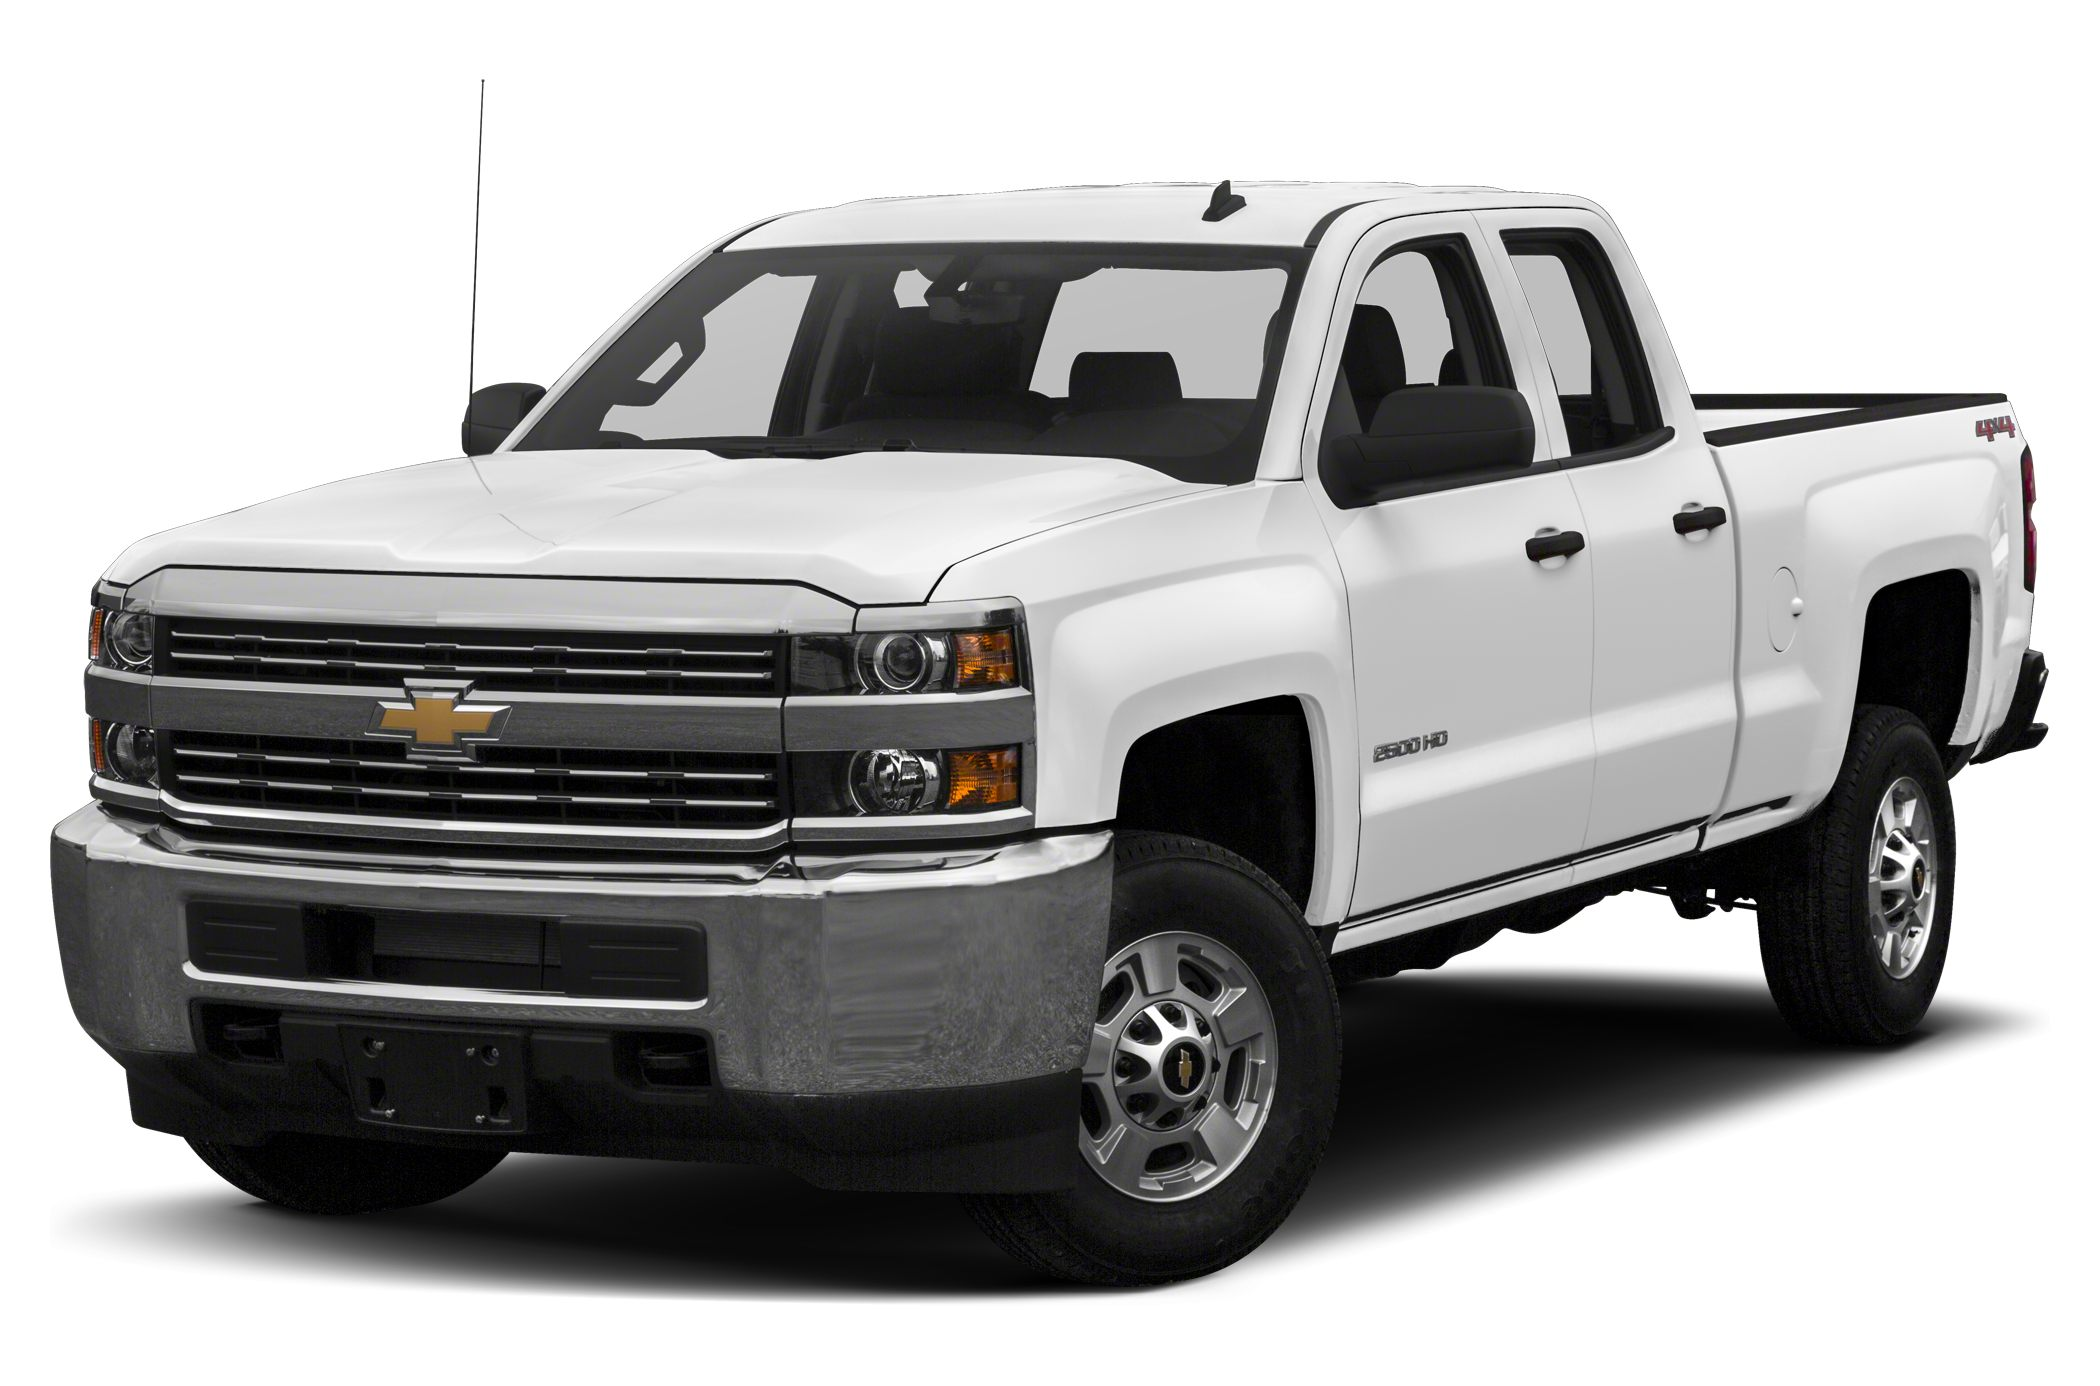 2015 Chevrolet Silverado 2500 LTZ Crew Cab Pickup for sale in Cairo for $61,255 with 0 miles